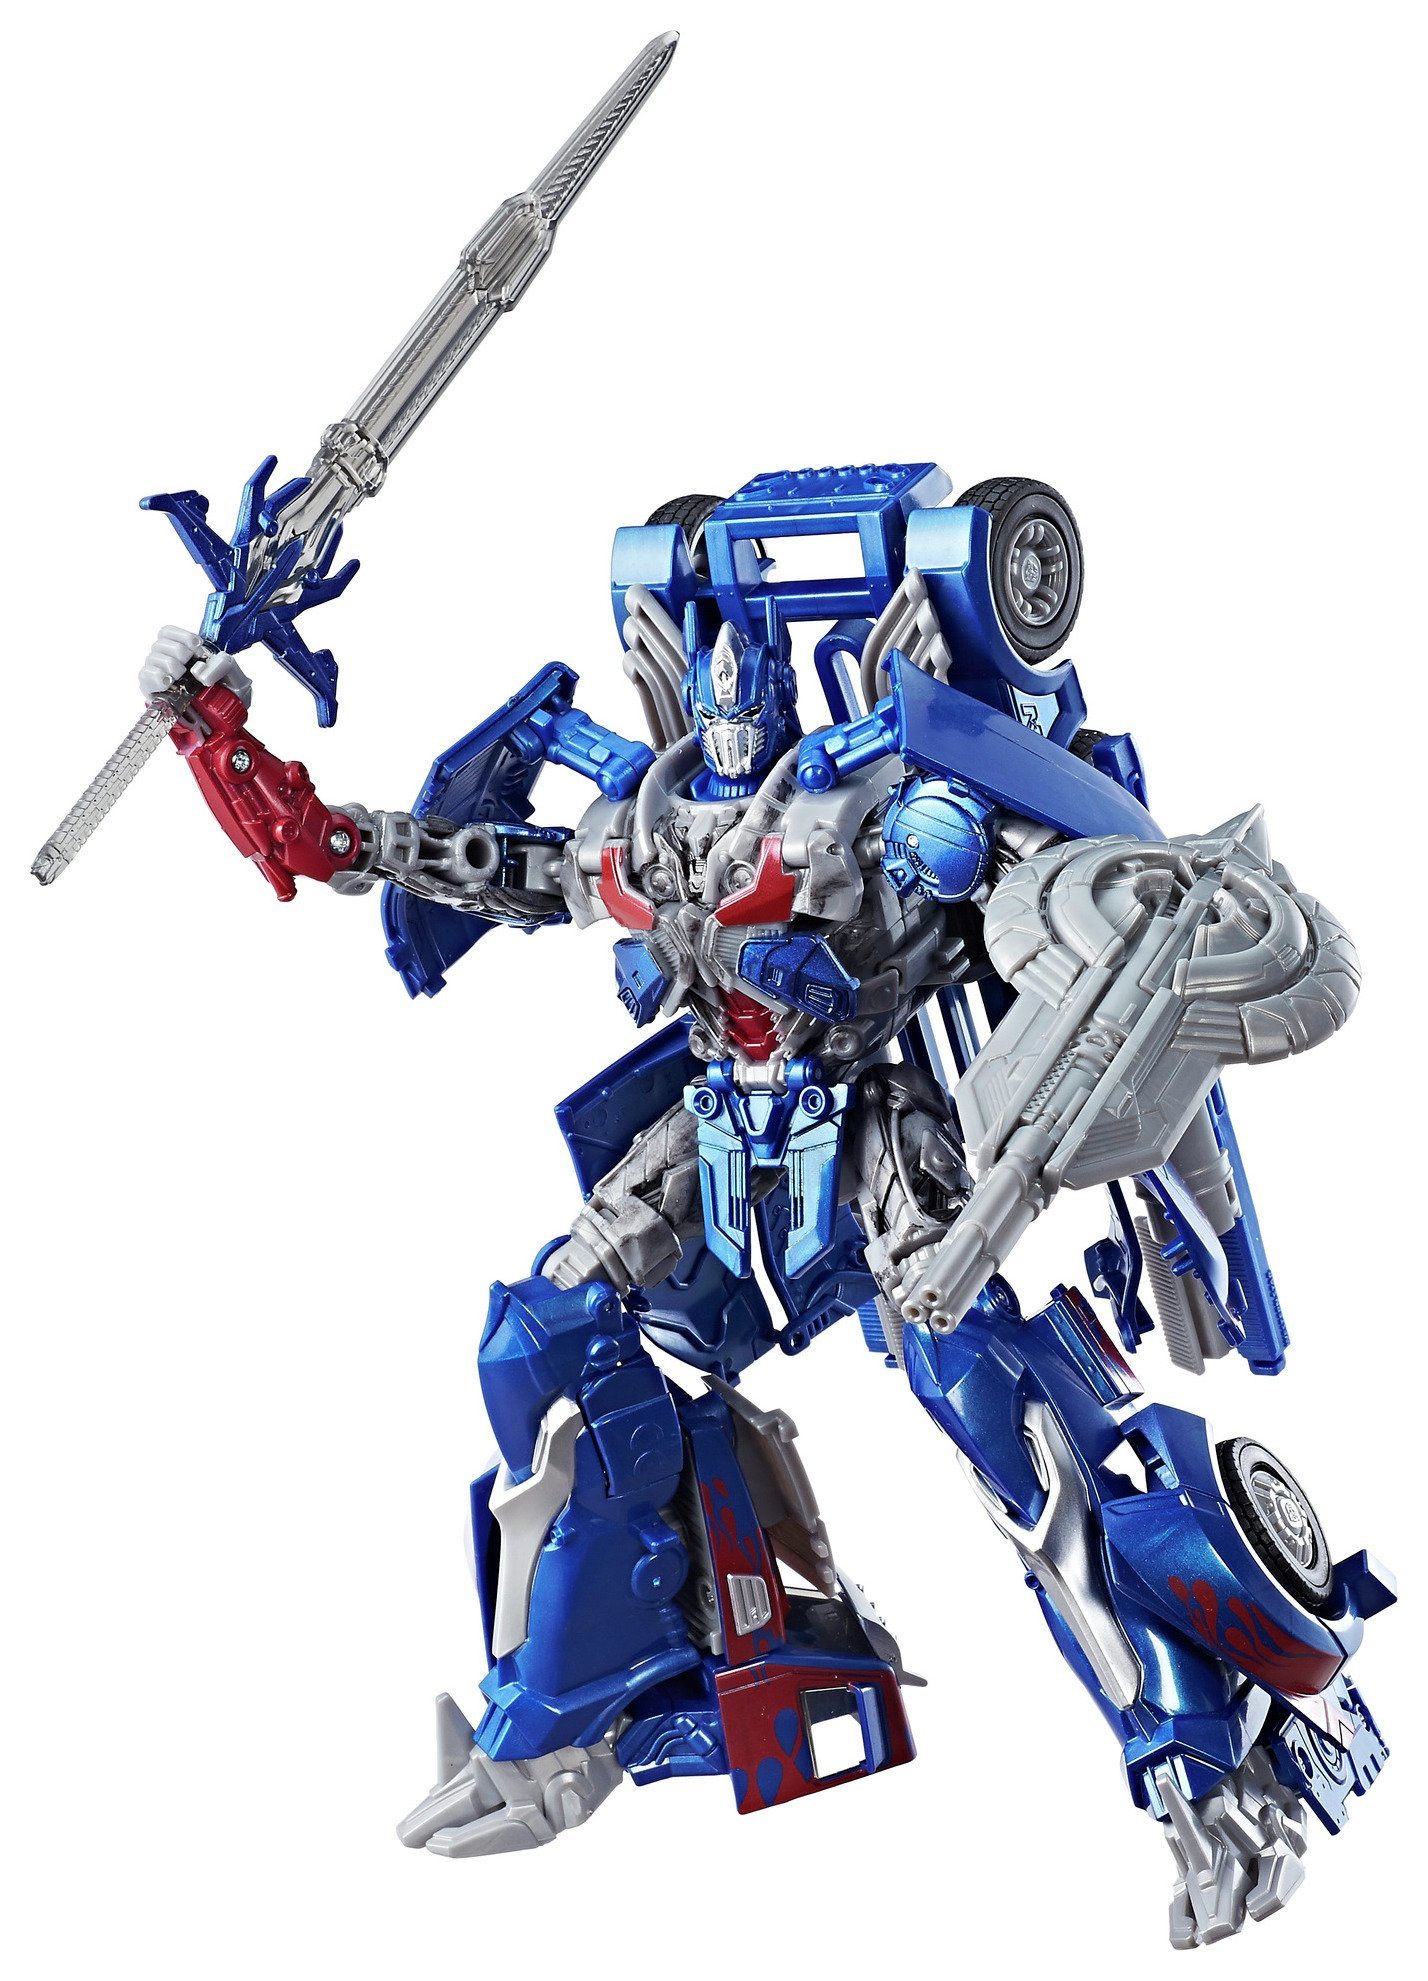 Image of Transformers: The Last Knight Premier Edition Optimus Prime